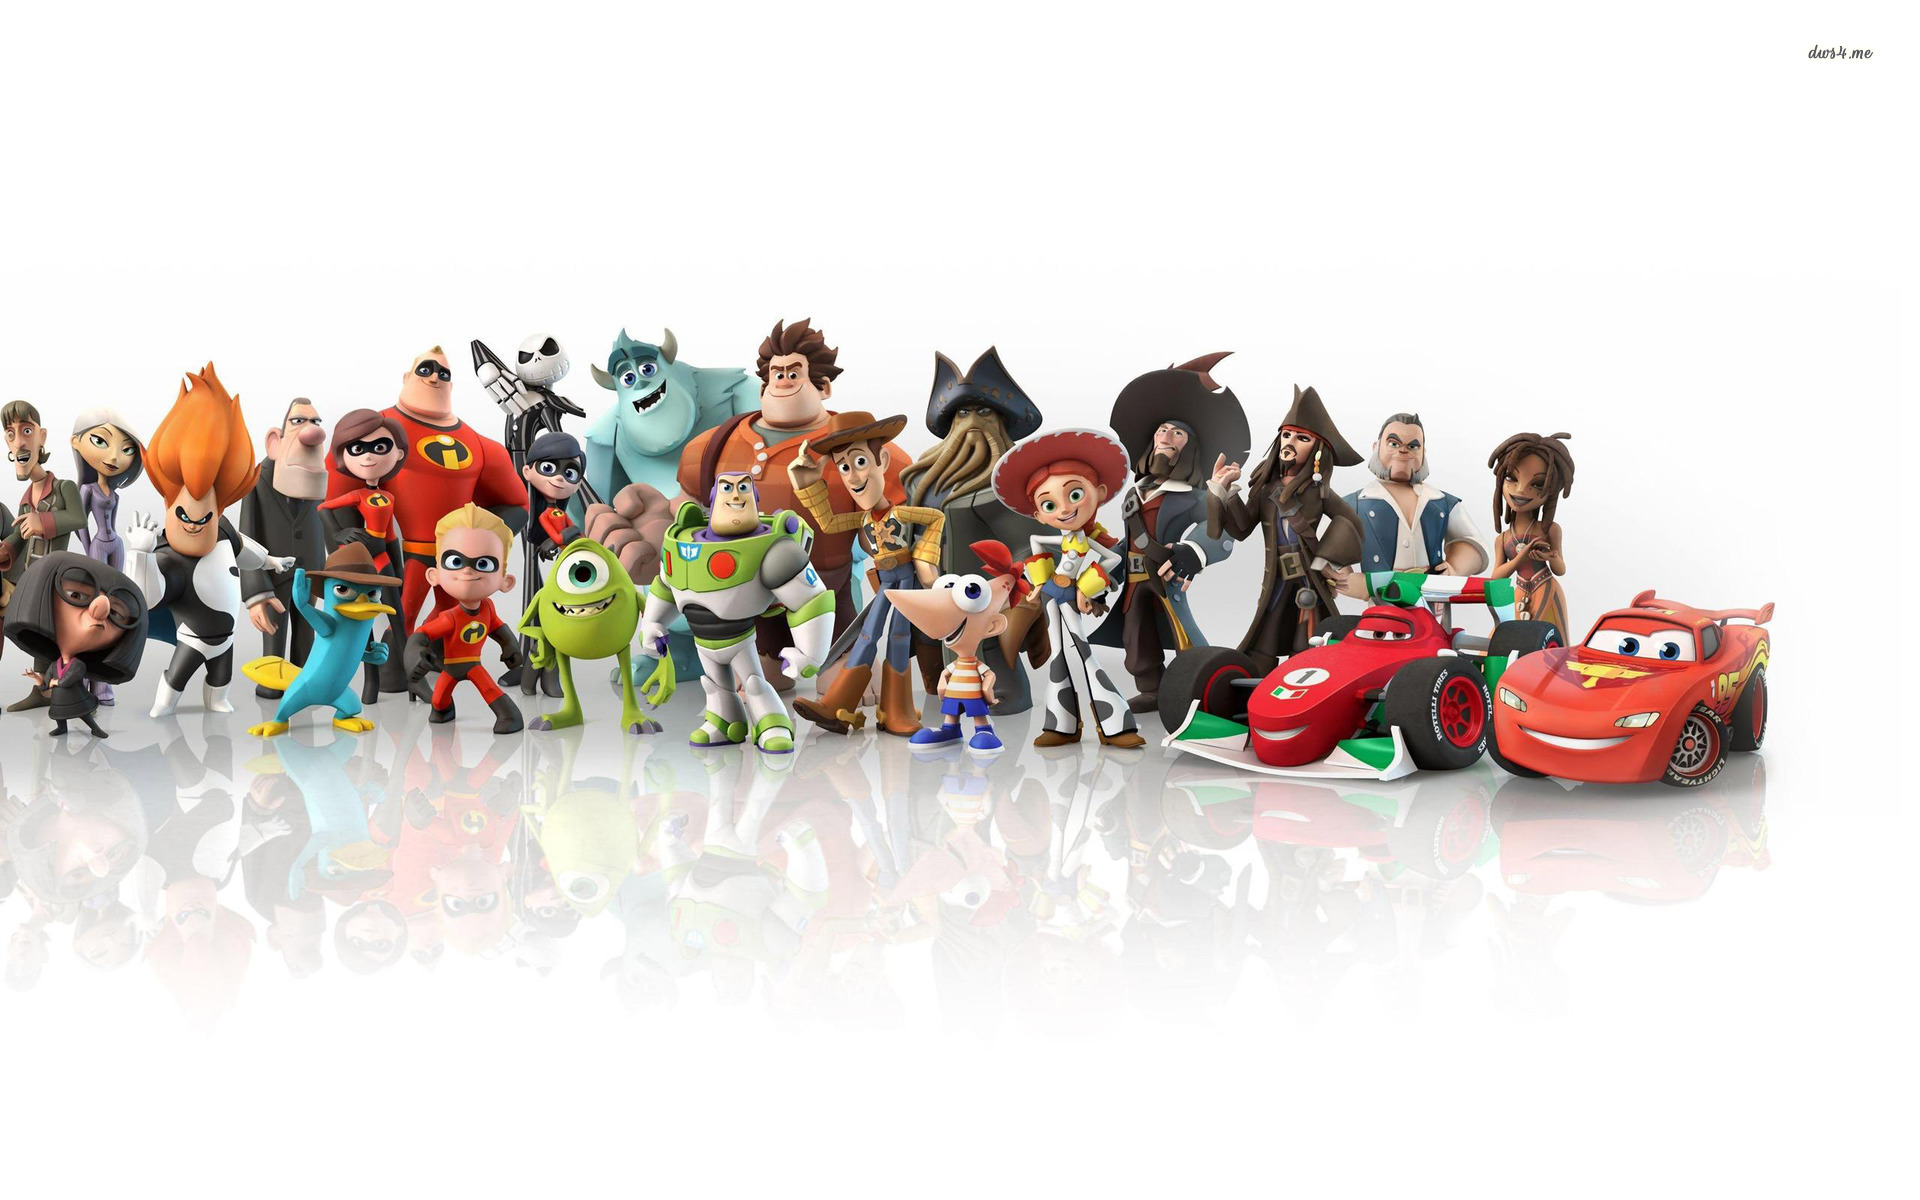 Pixar cartoon characters Hd wallpaper hdlatestwallpaper 1920x1200